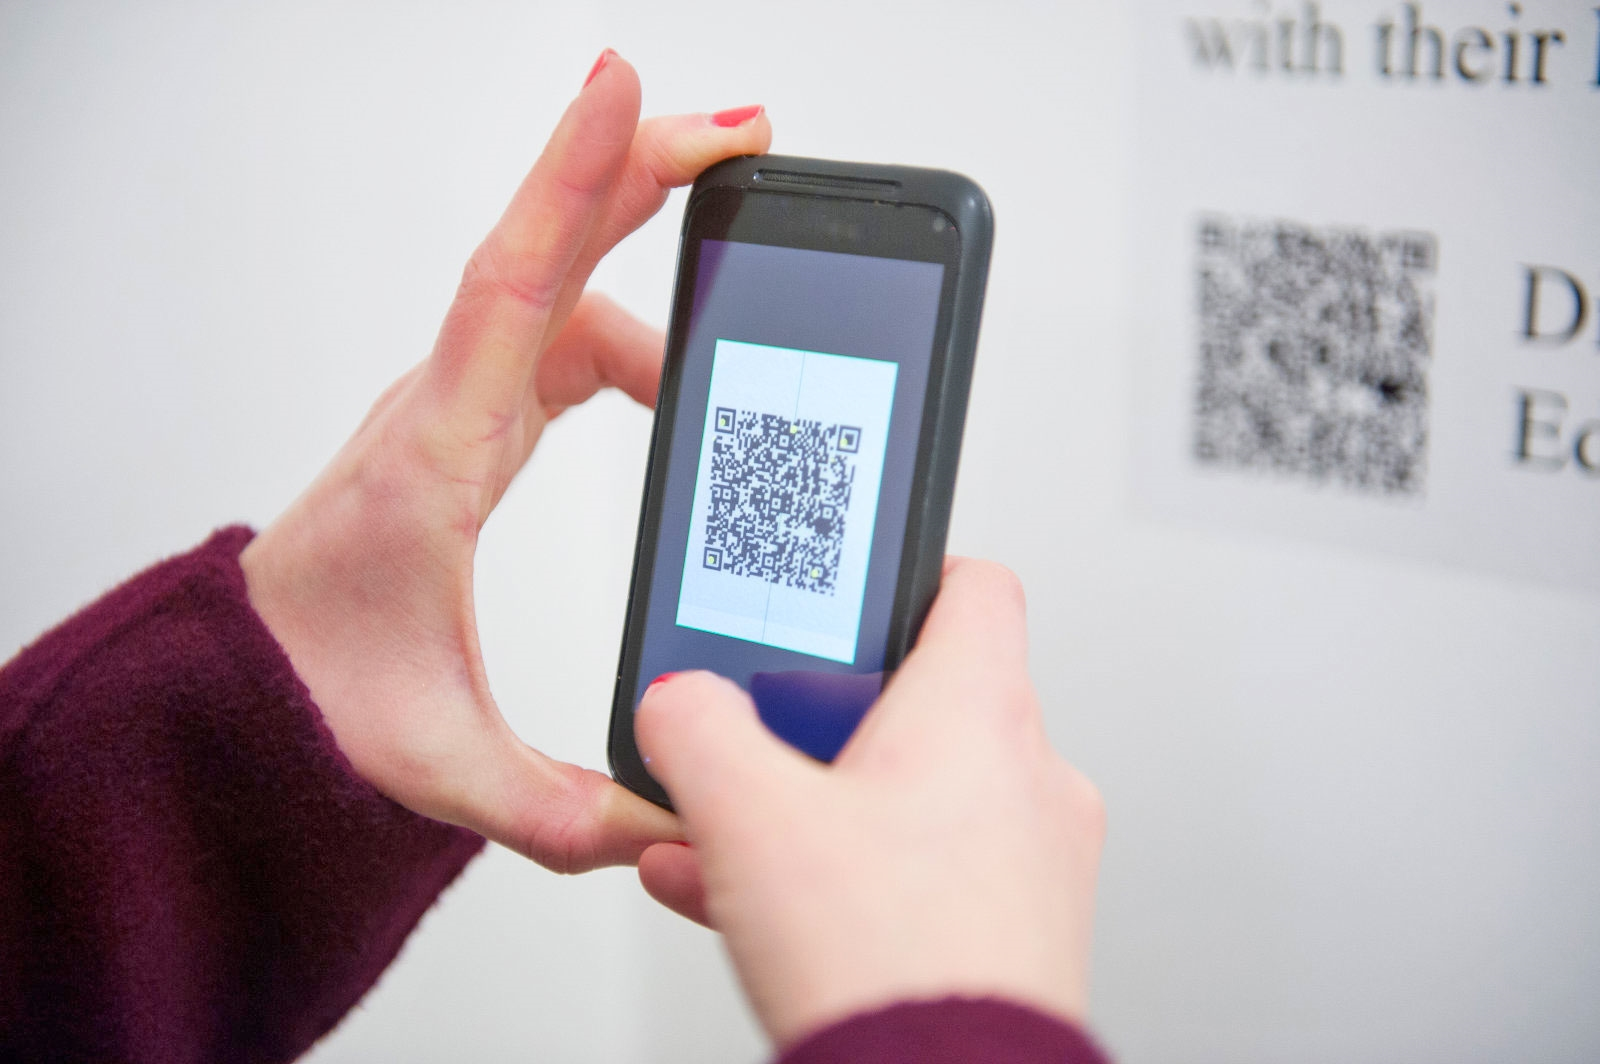 Android malware found inside seemingly innocent QR code apps | DeviceDaily.com